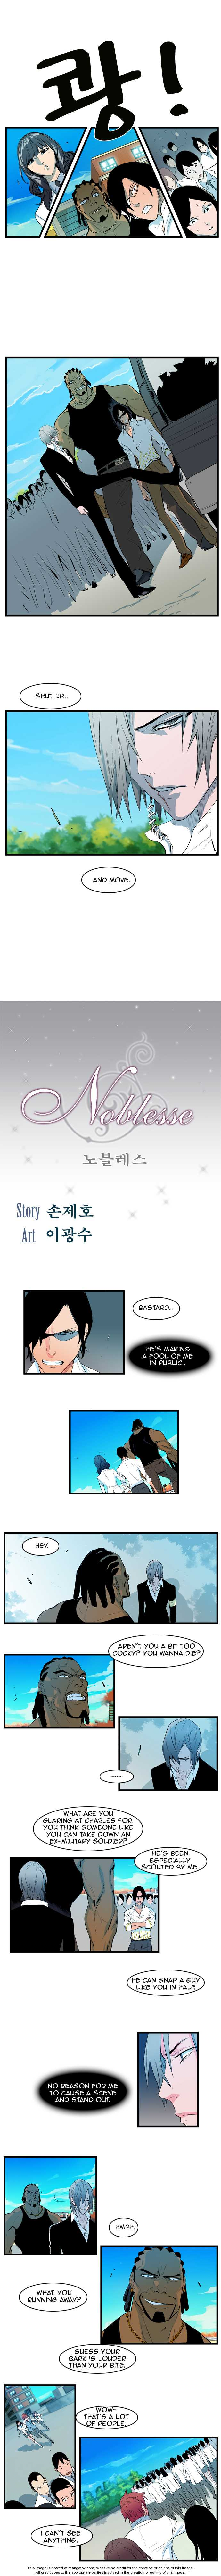 Noblesse 95 Page 1